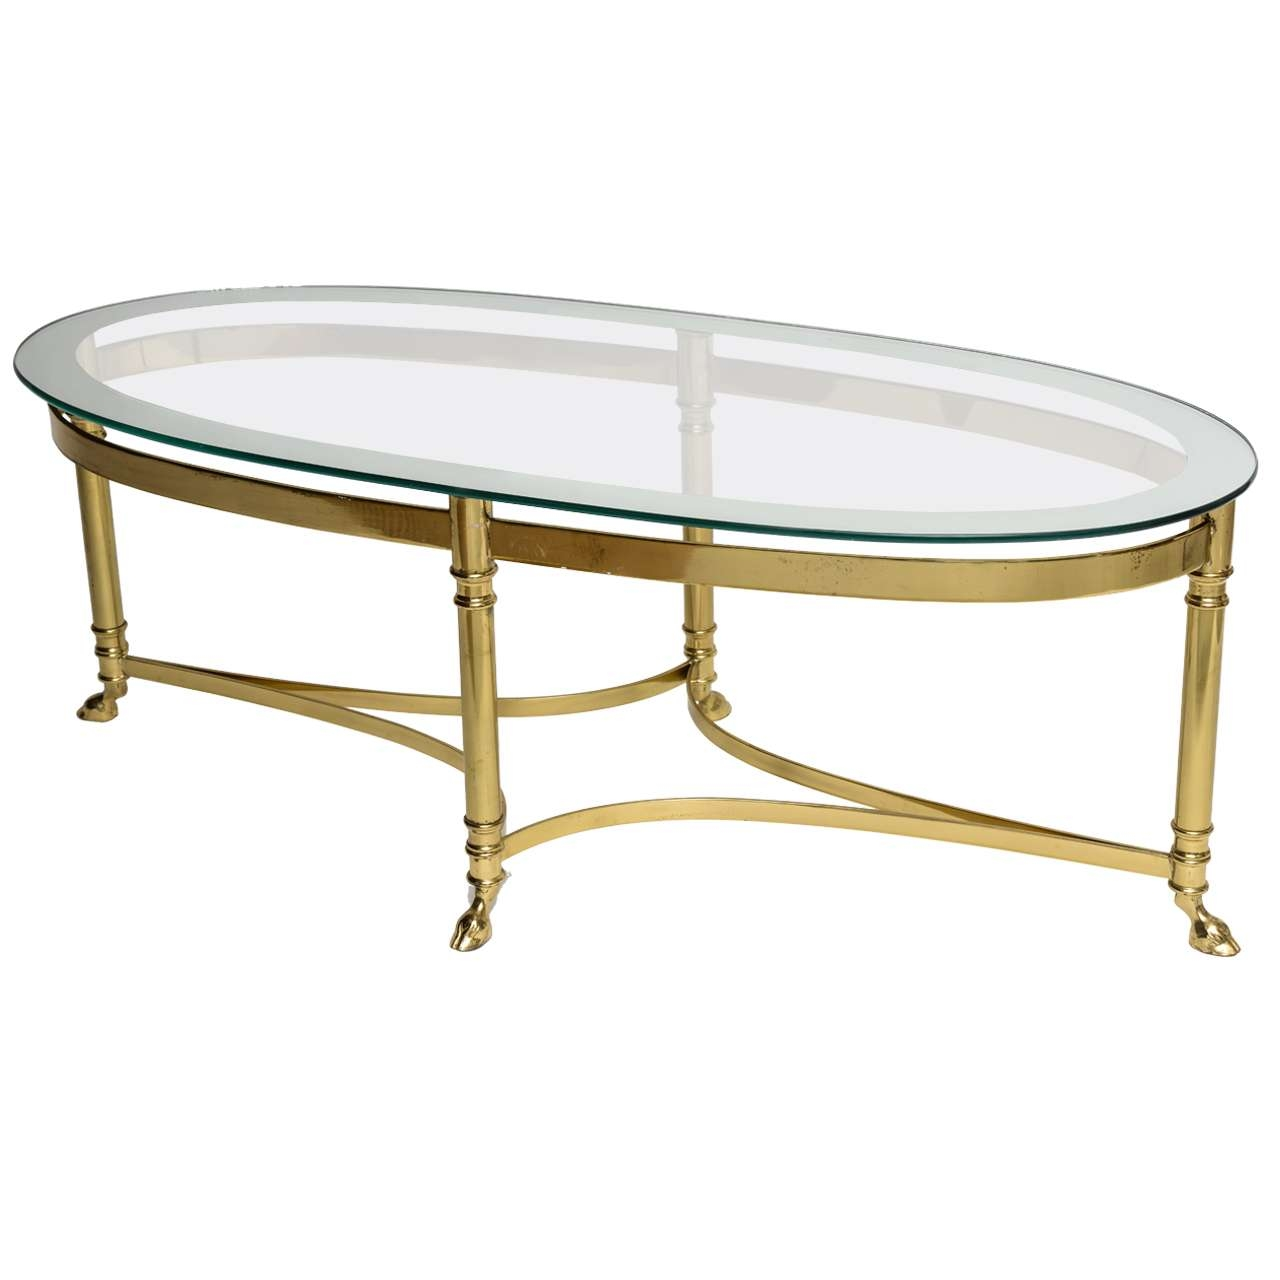 Coffee Tables Ideas: Stunning Glass Oval Coffee Table Living Room Intended For Current Antique Glass Coffee Tables (View 5 of 20)